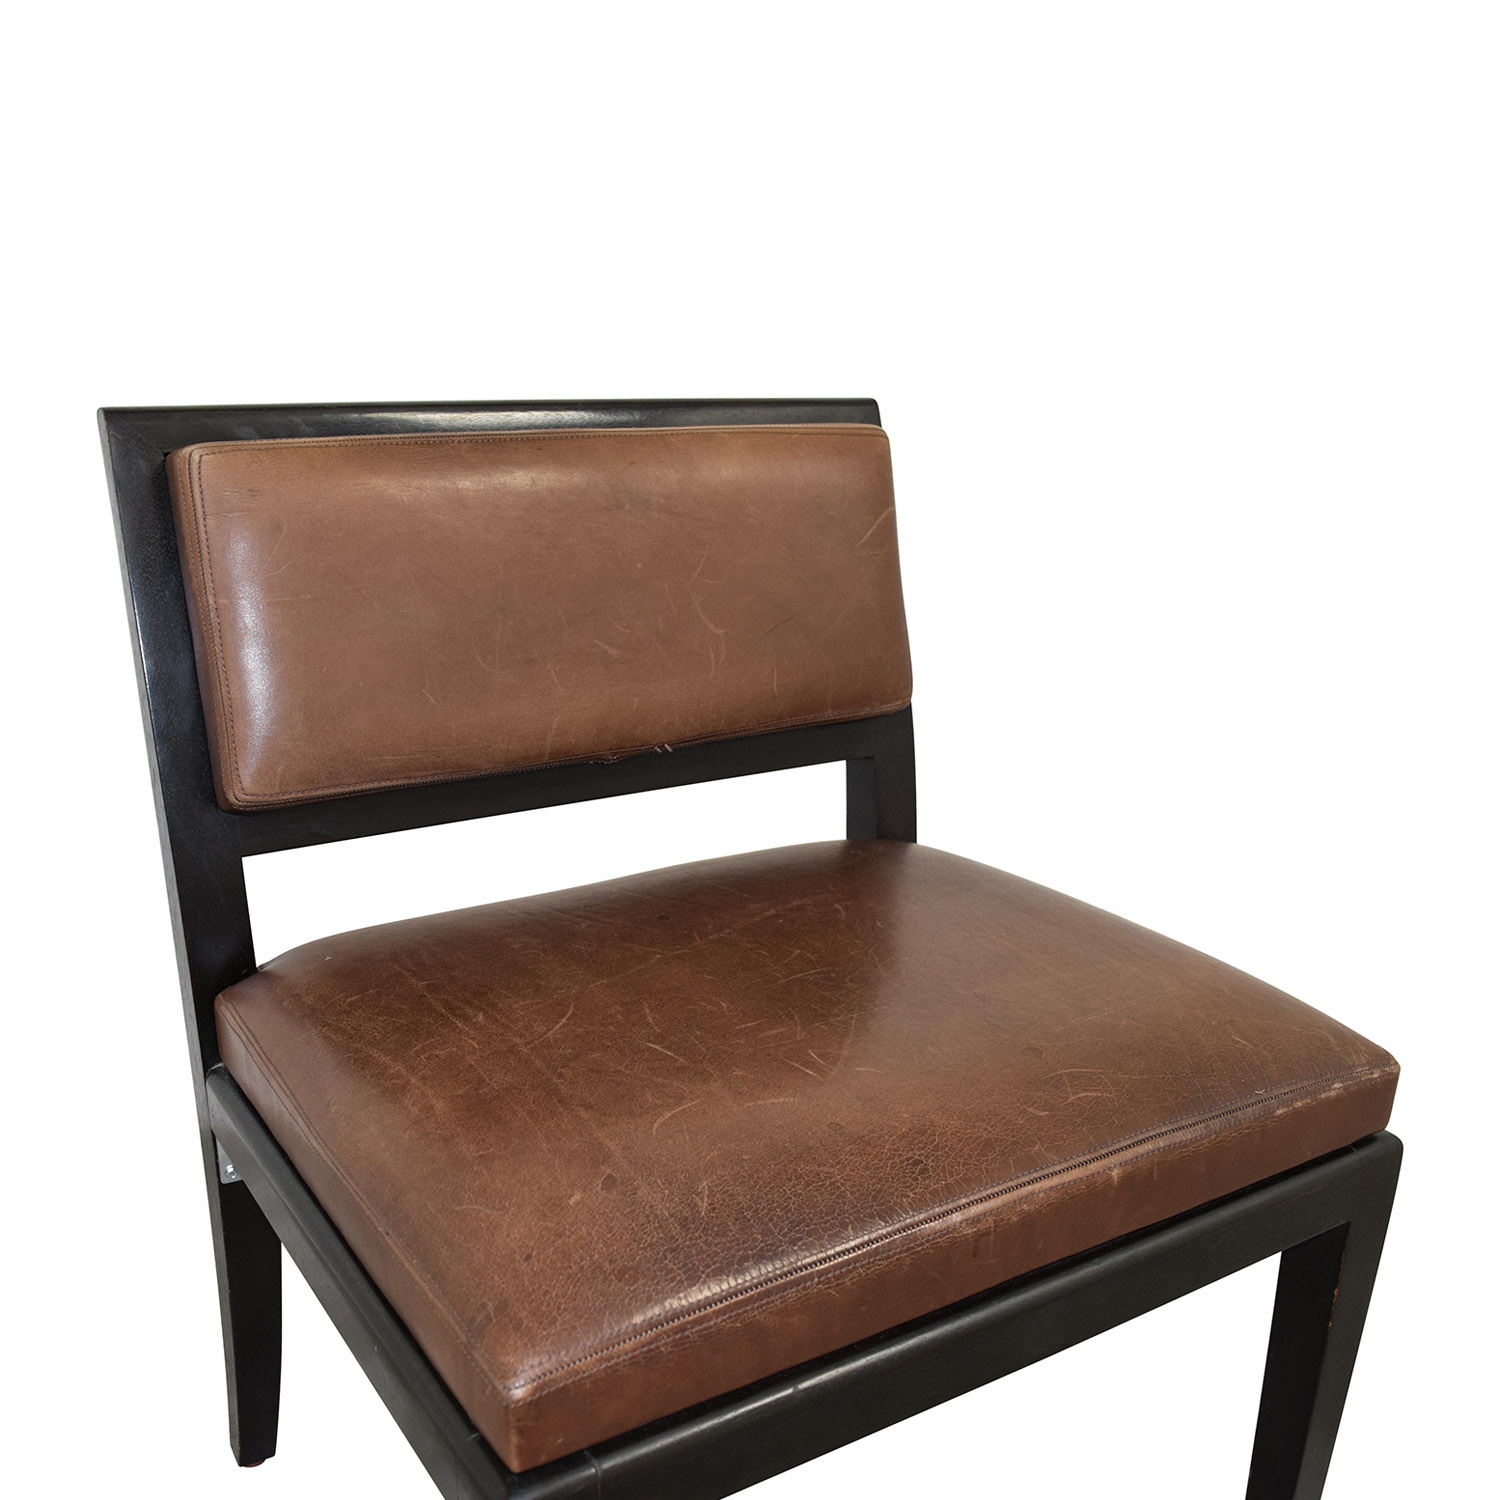 50% OFF Richard Michaan Richard Michaan Brown Leather Chair Chairs